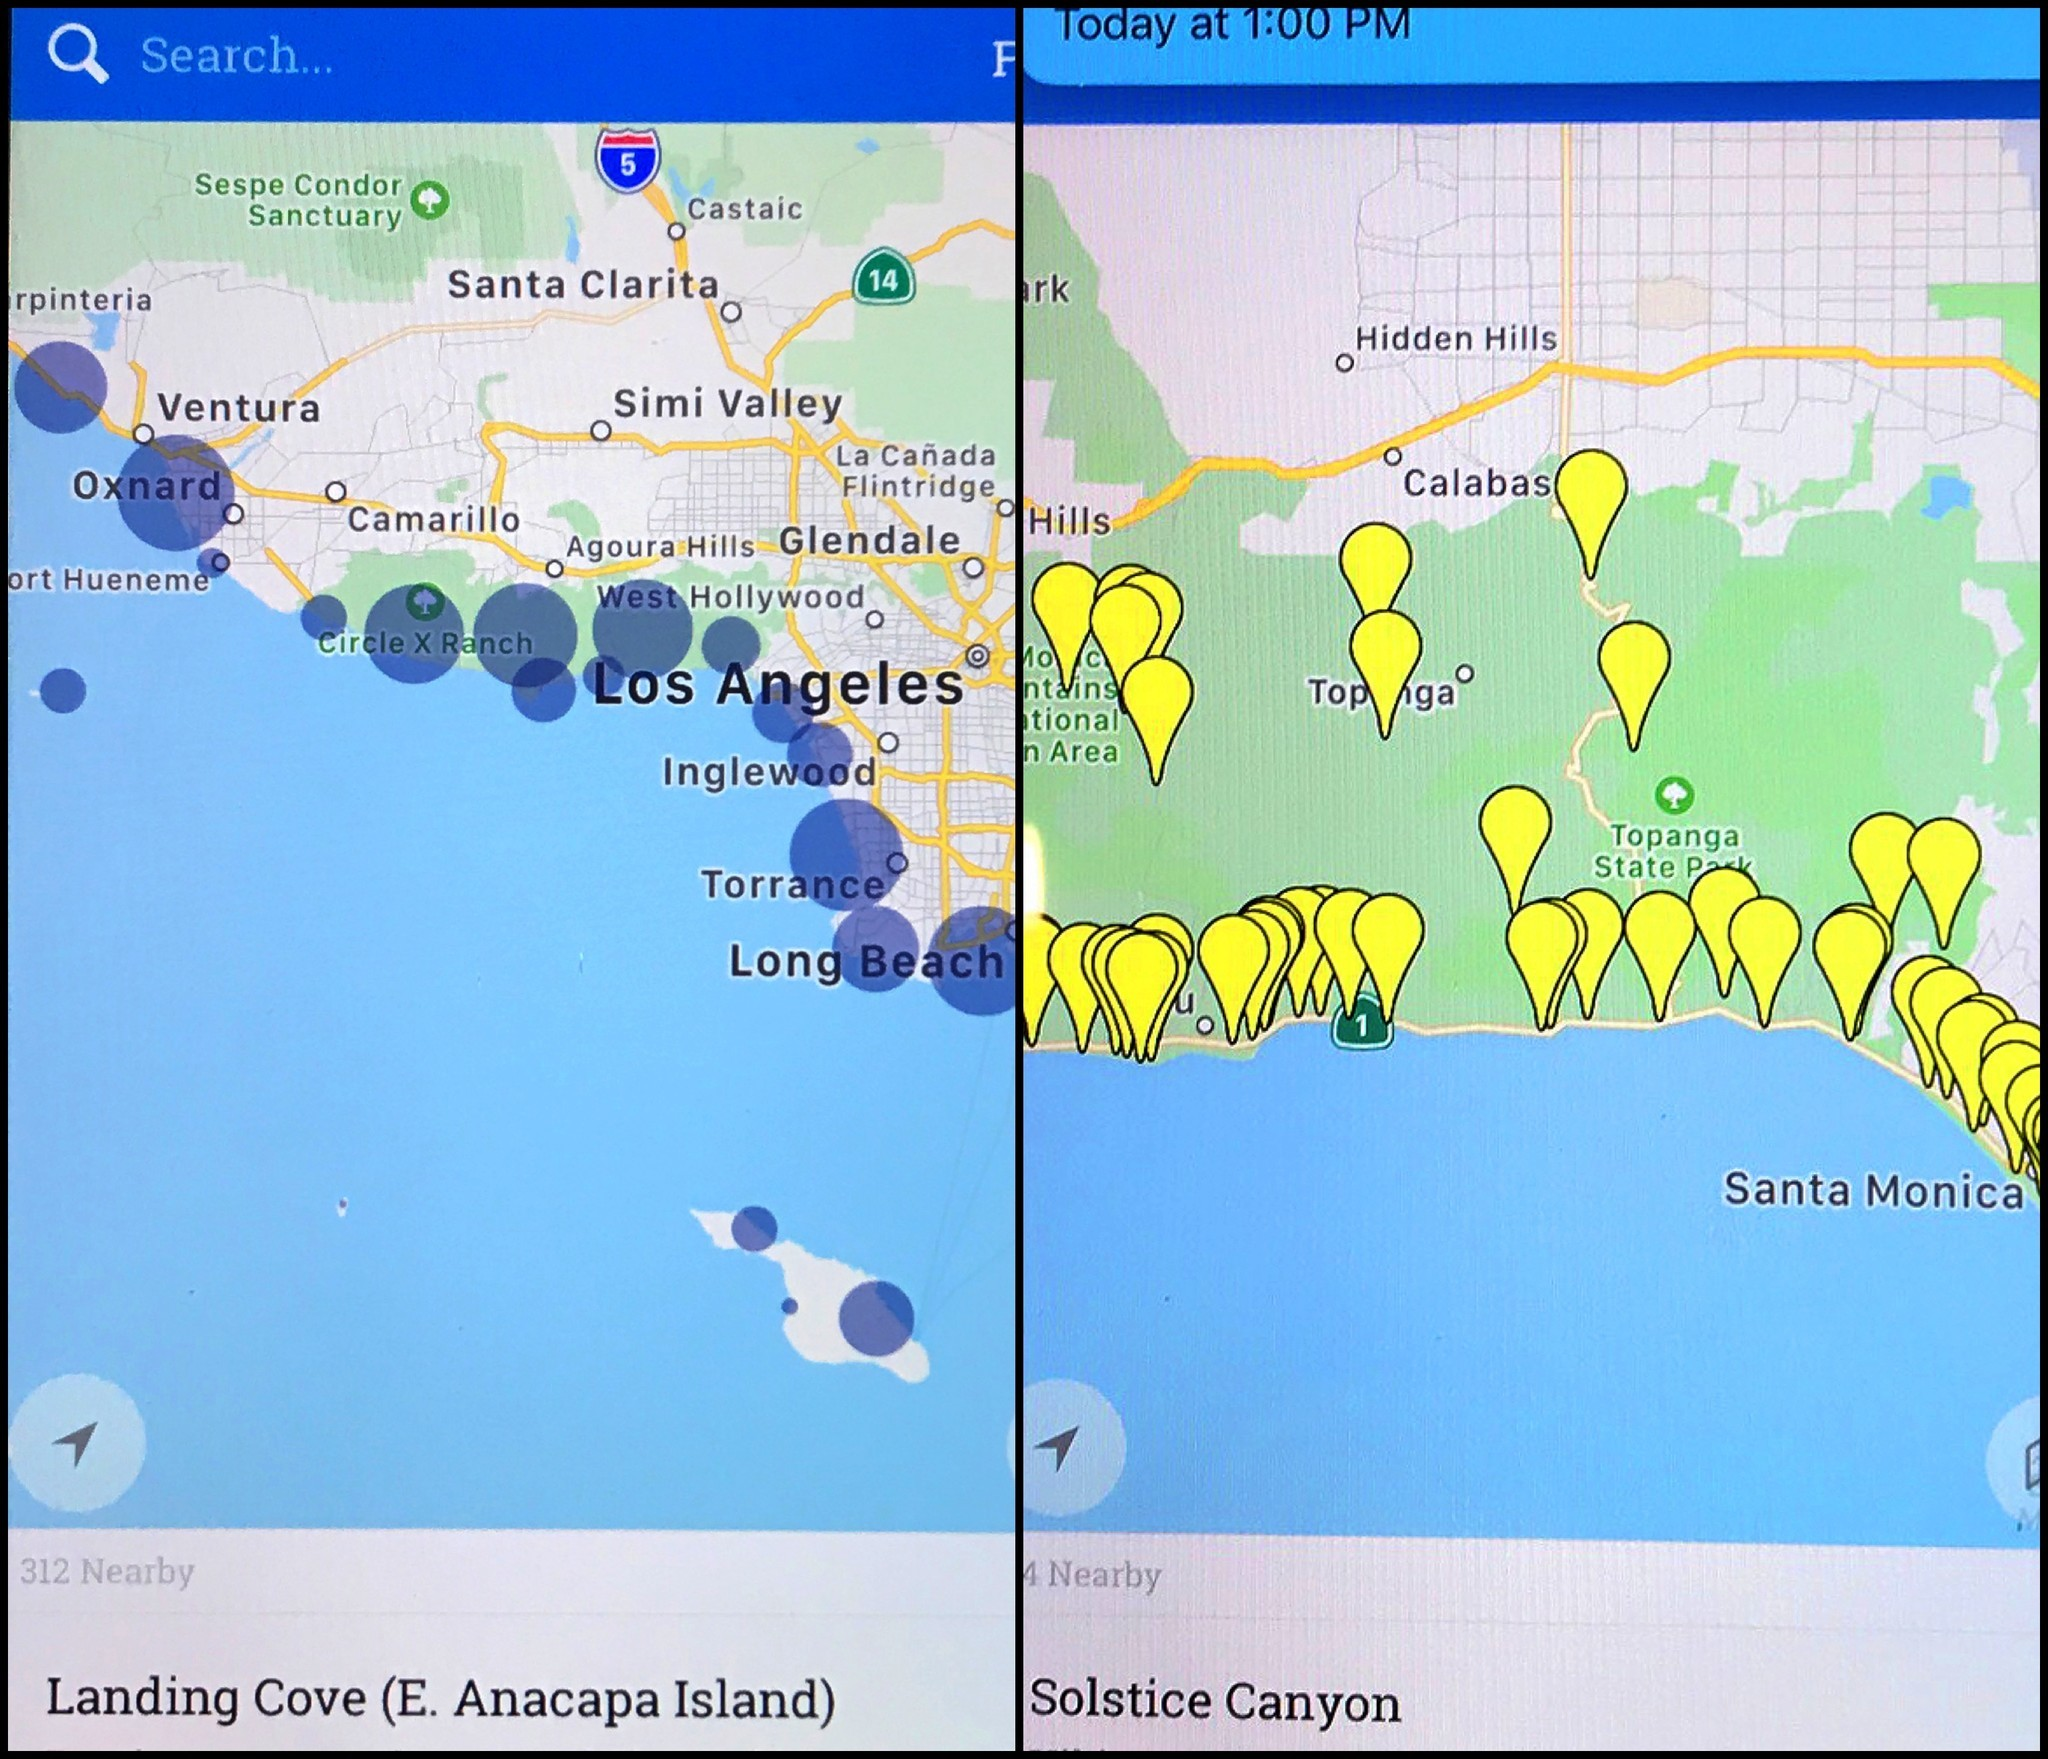 The app shows users a map of 1,563 public access points that the commission tracks along the California coast.